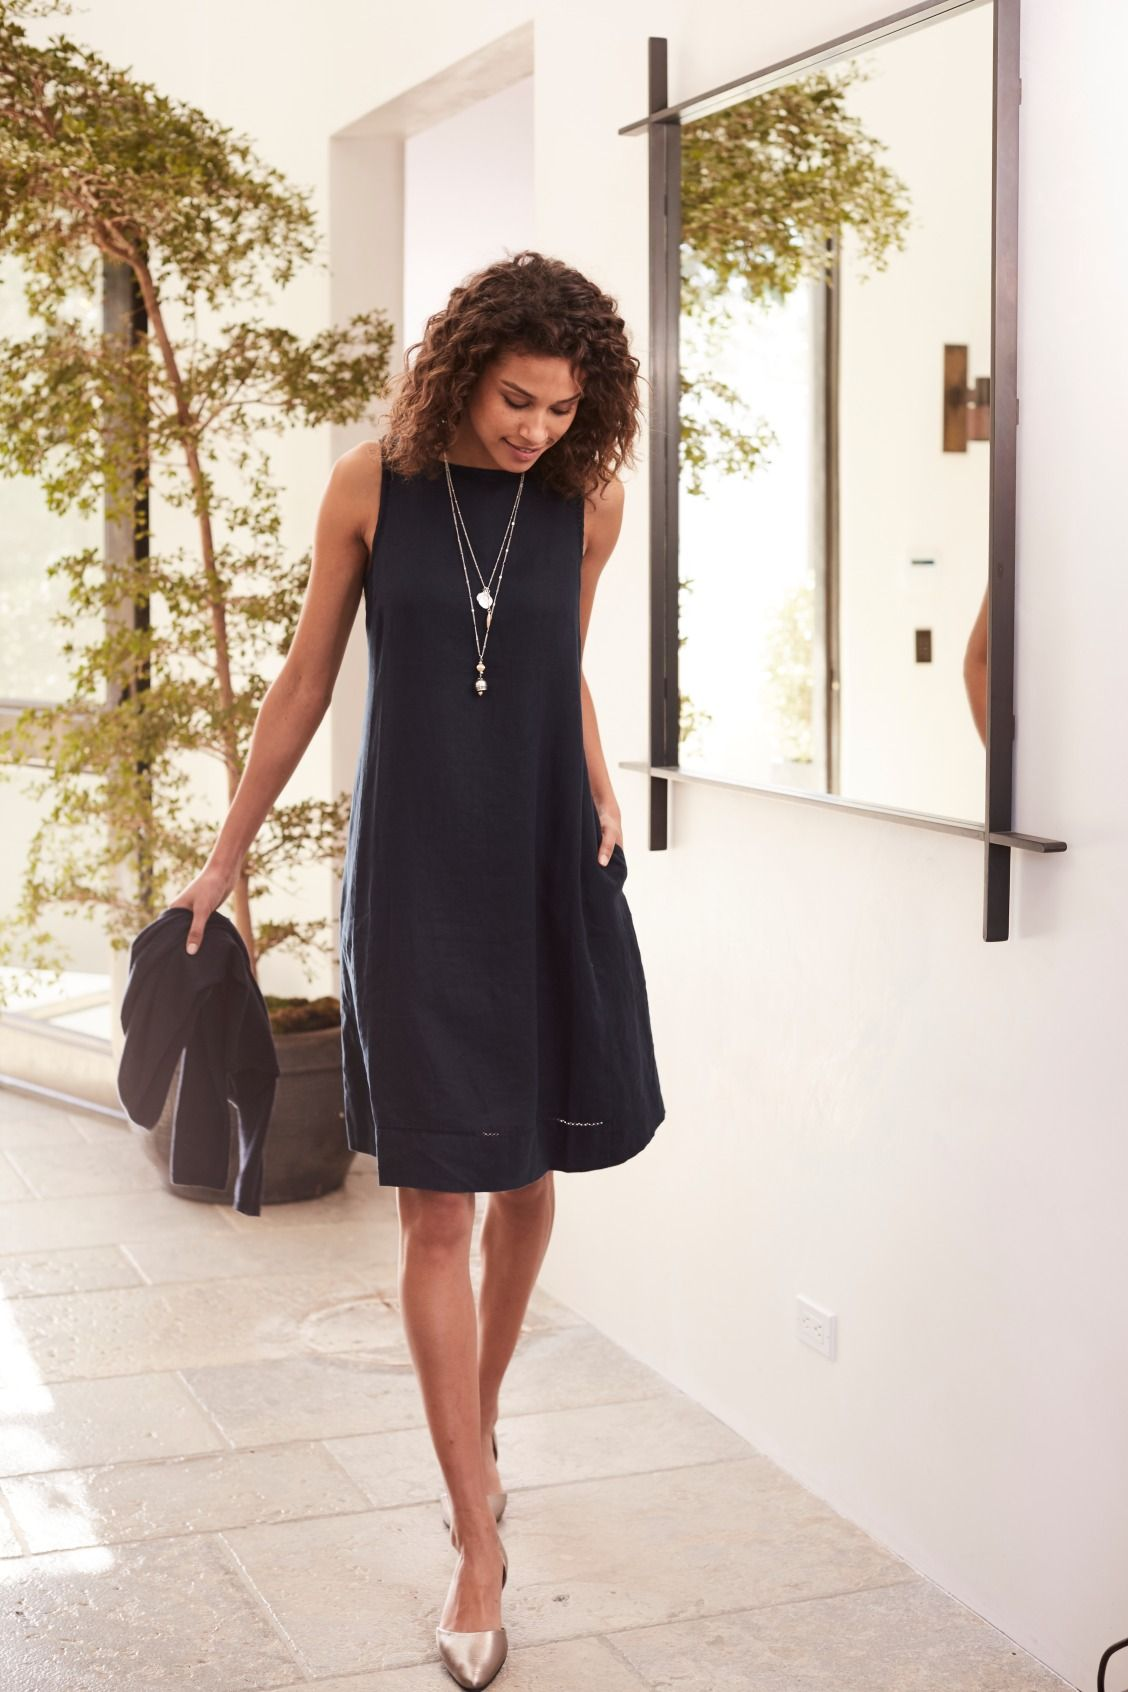 Spring Necessity A Go Anywhere Dress For Every Occasion Featuring J Jill S Linen A Line Slee Casual Dress Outfits Clothes For Women Black Dress Outfit Casual [ 1692 x 1128 Pixel ]